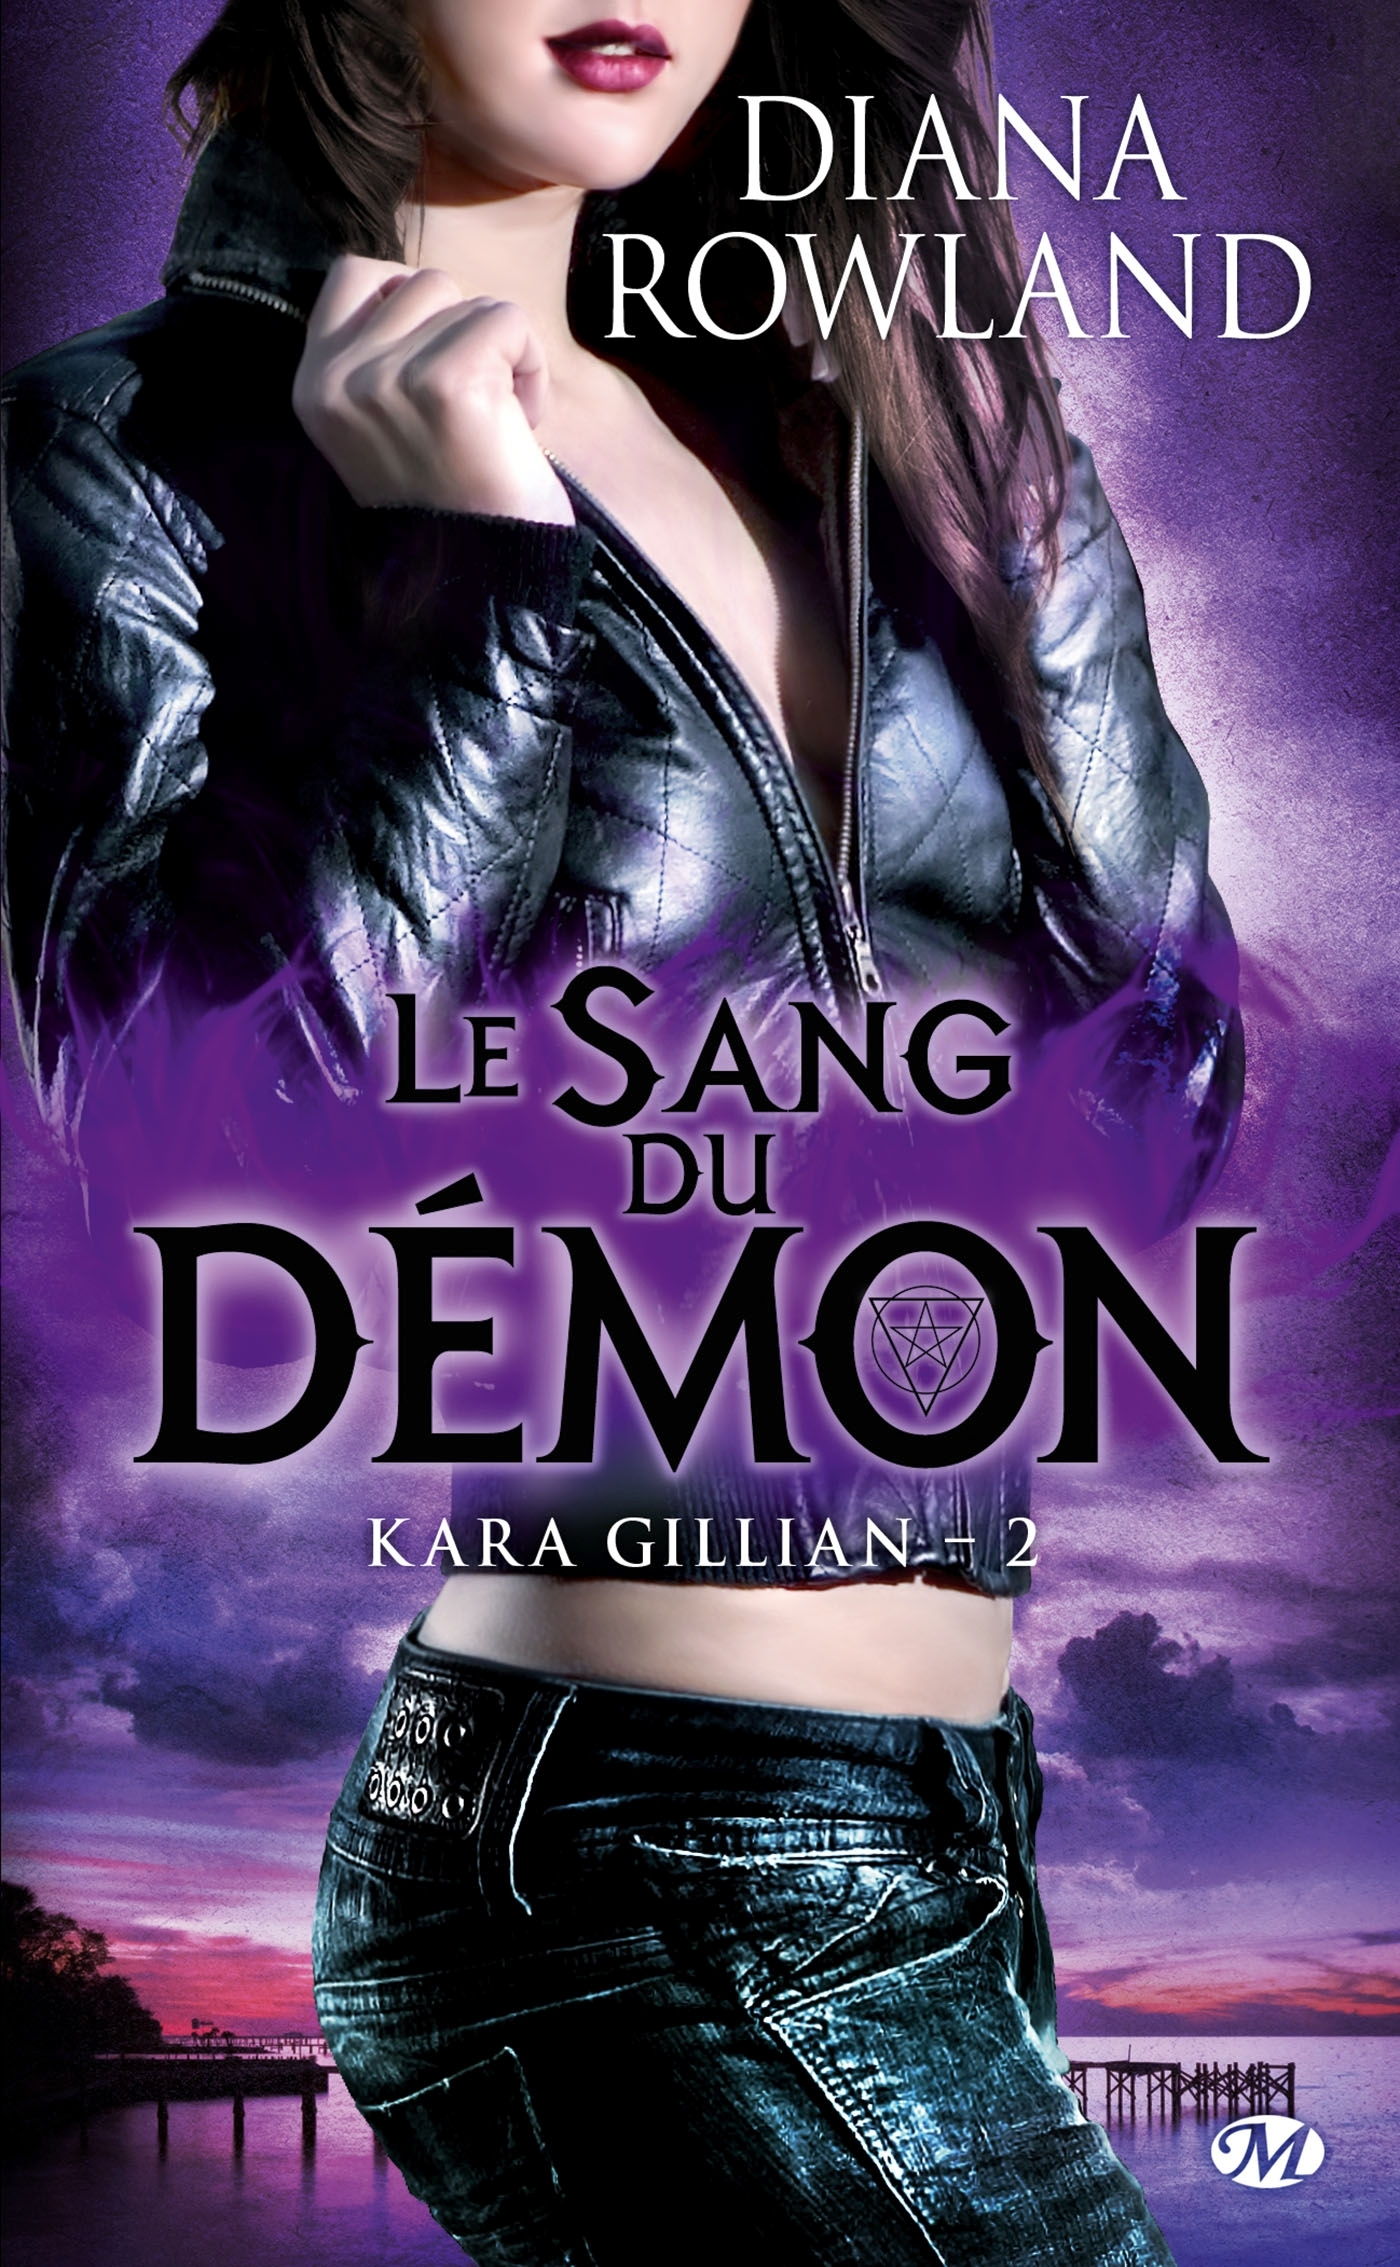 KARA GILLIAN, T2 : LE SANG DU DEMON